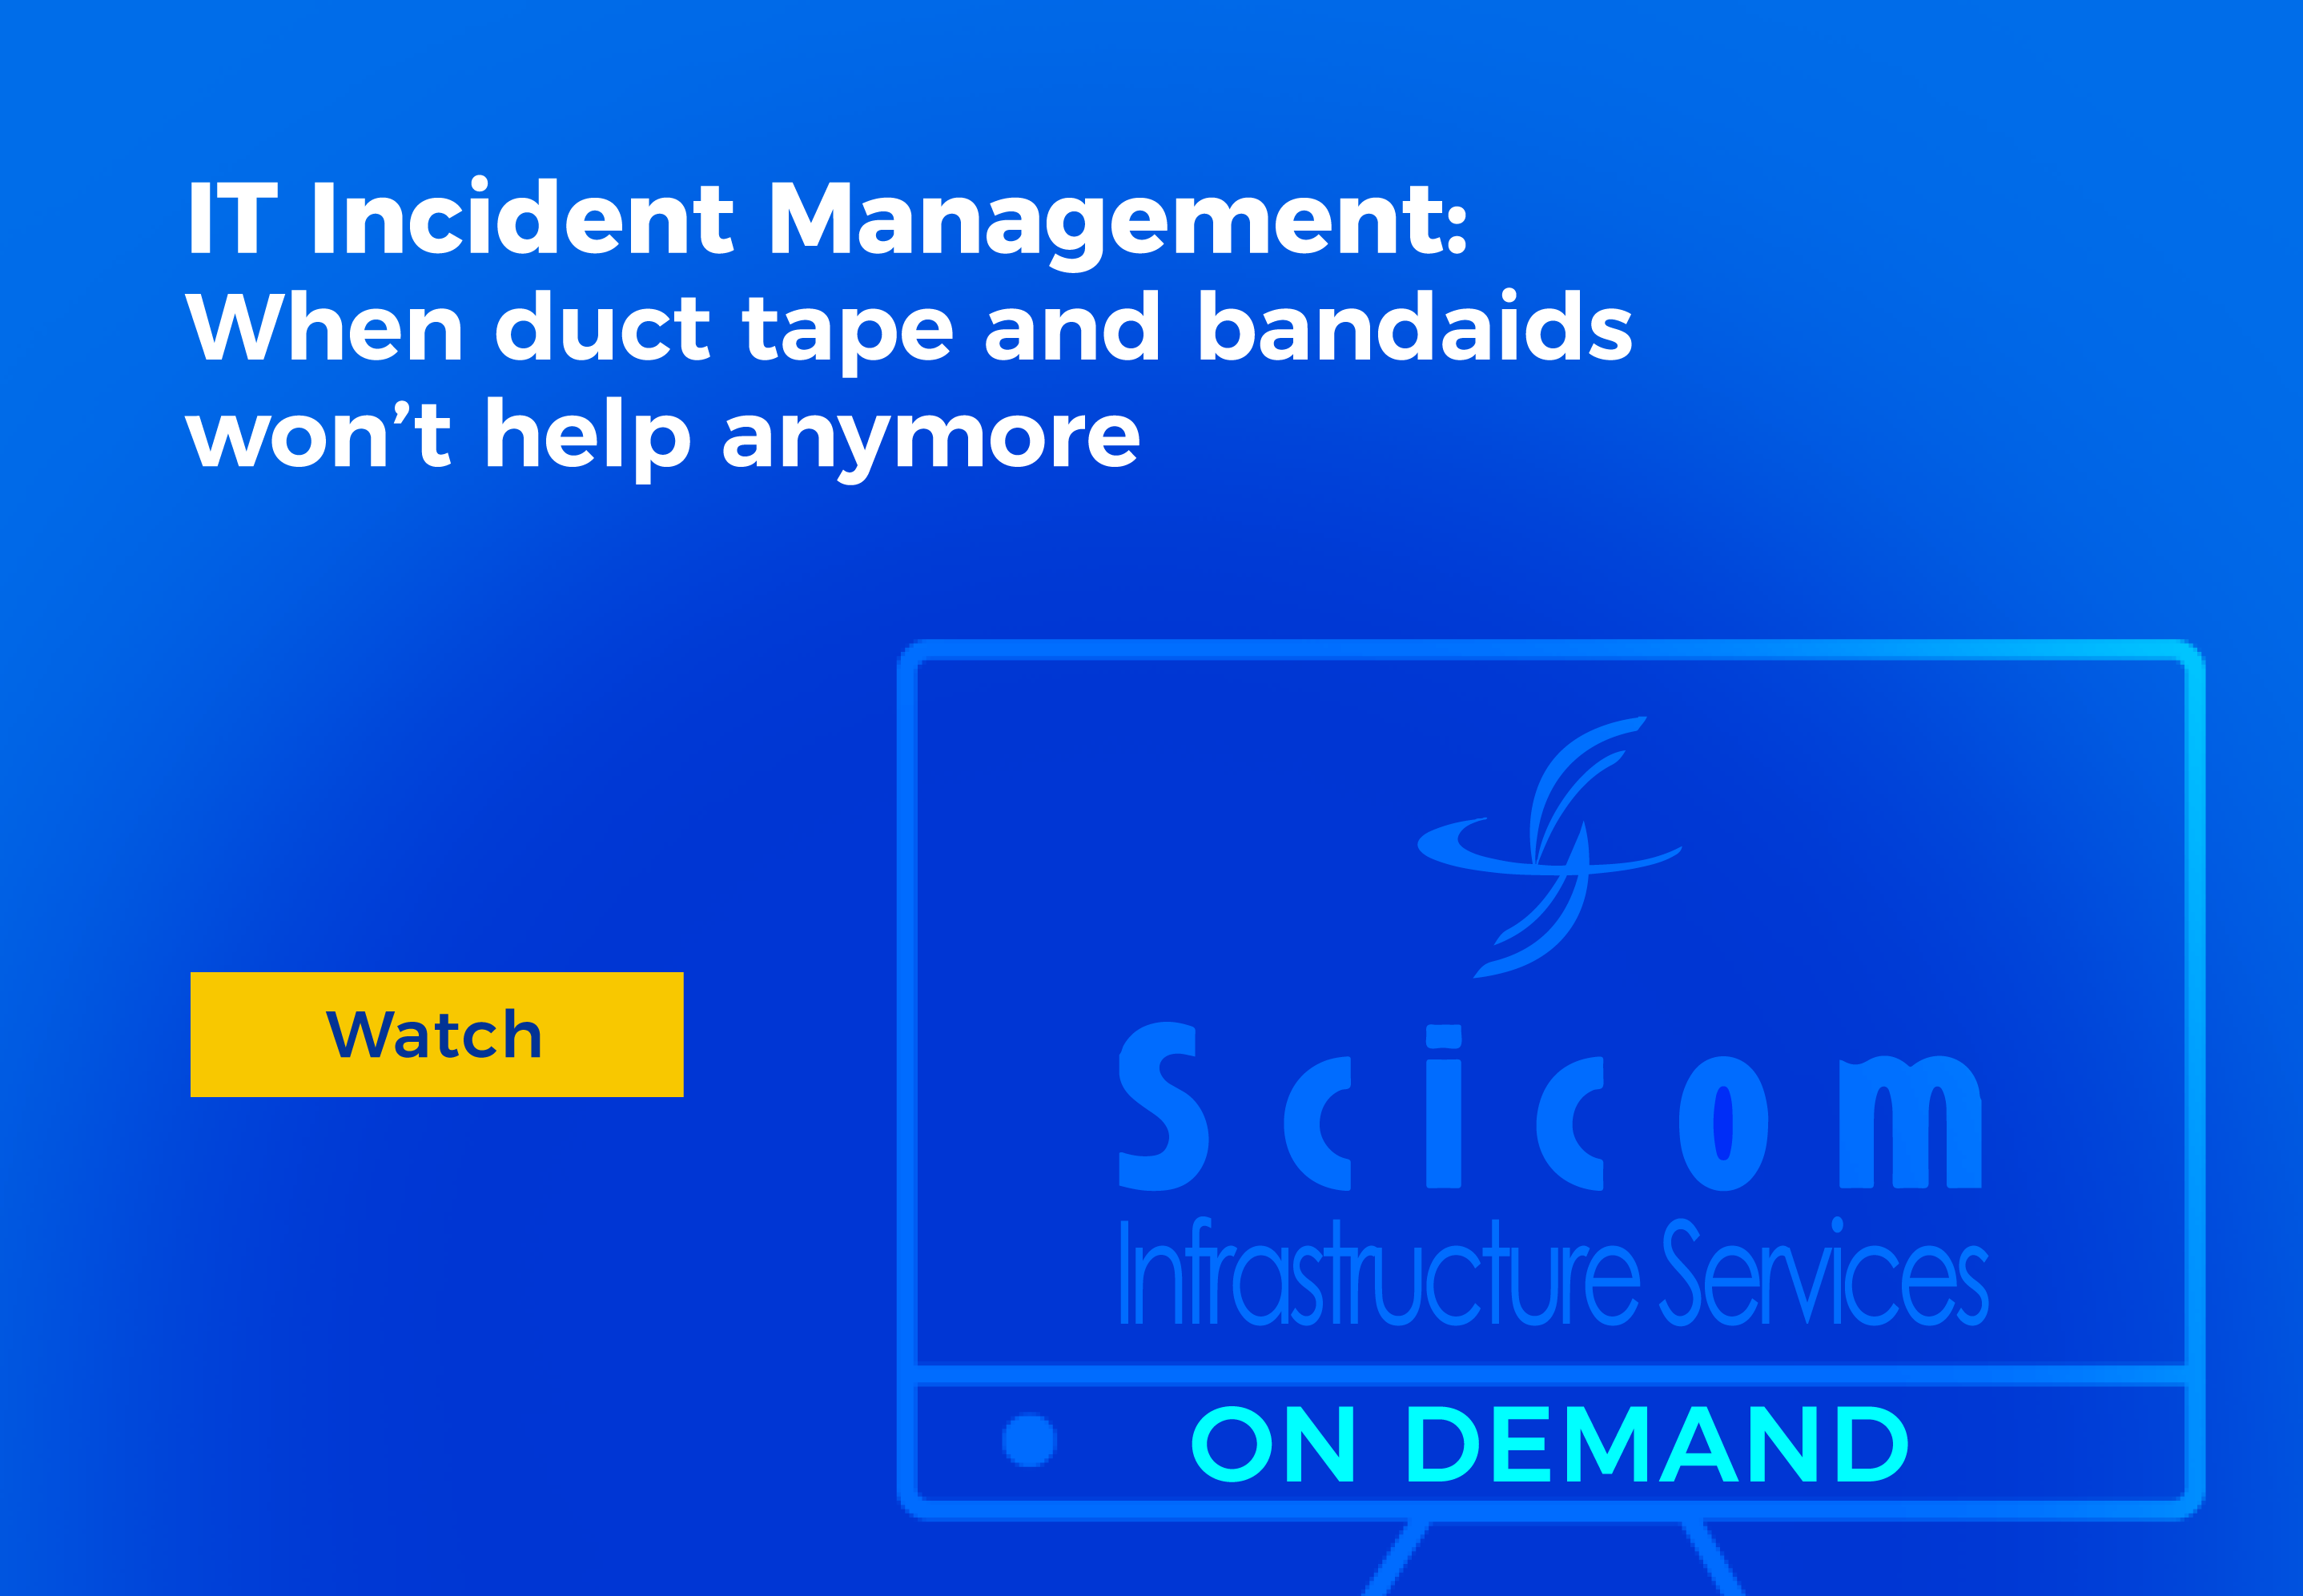 IT Incident Management - when duct tape and band-aids will no longer help